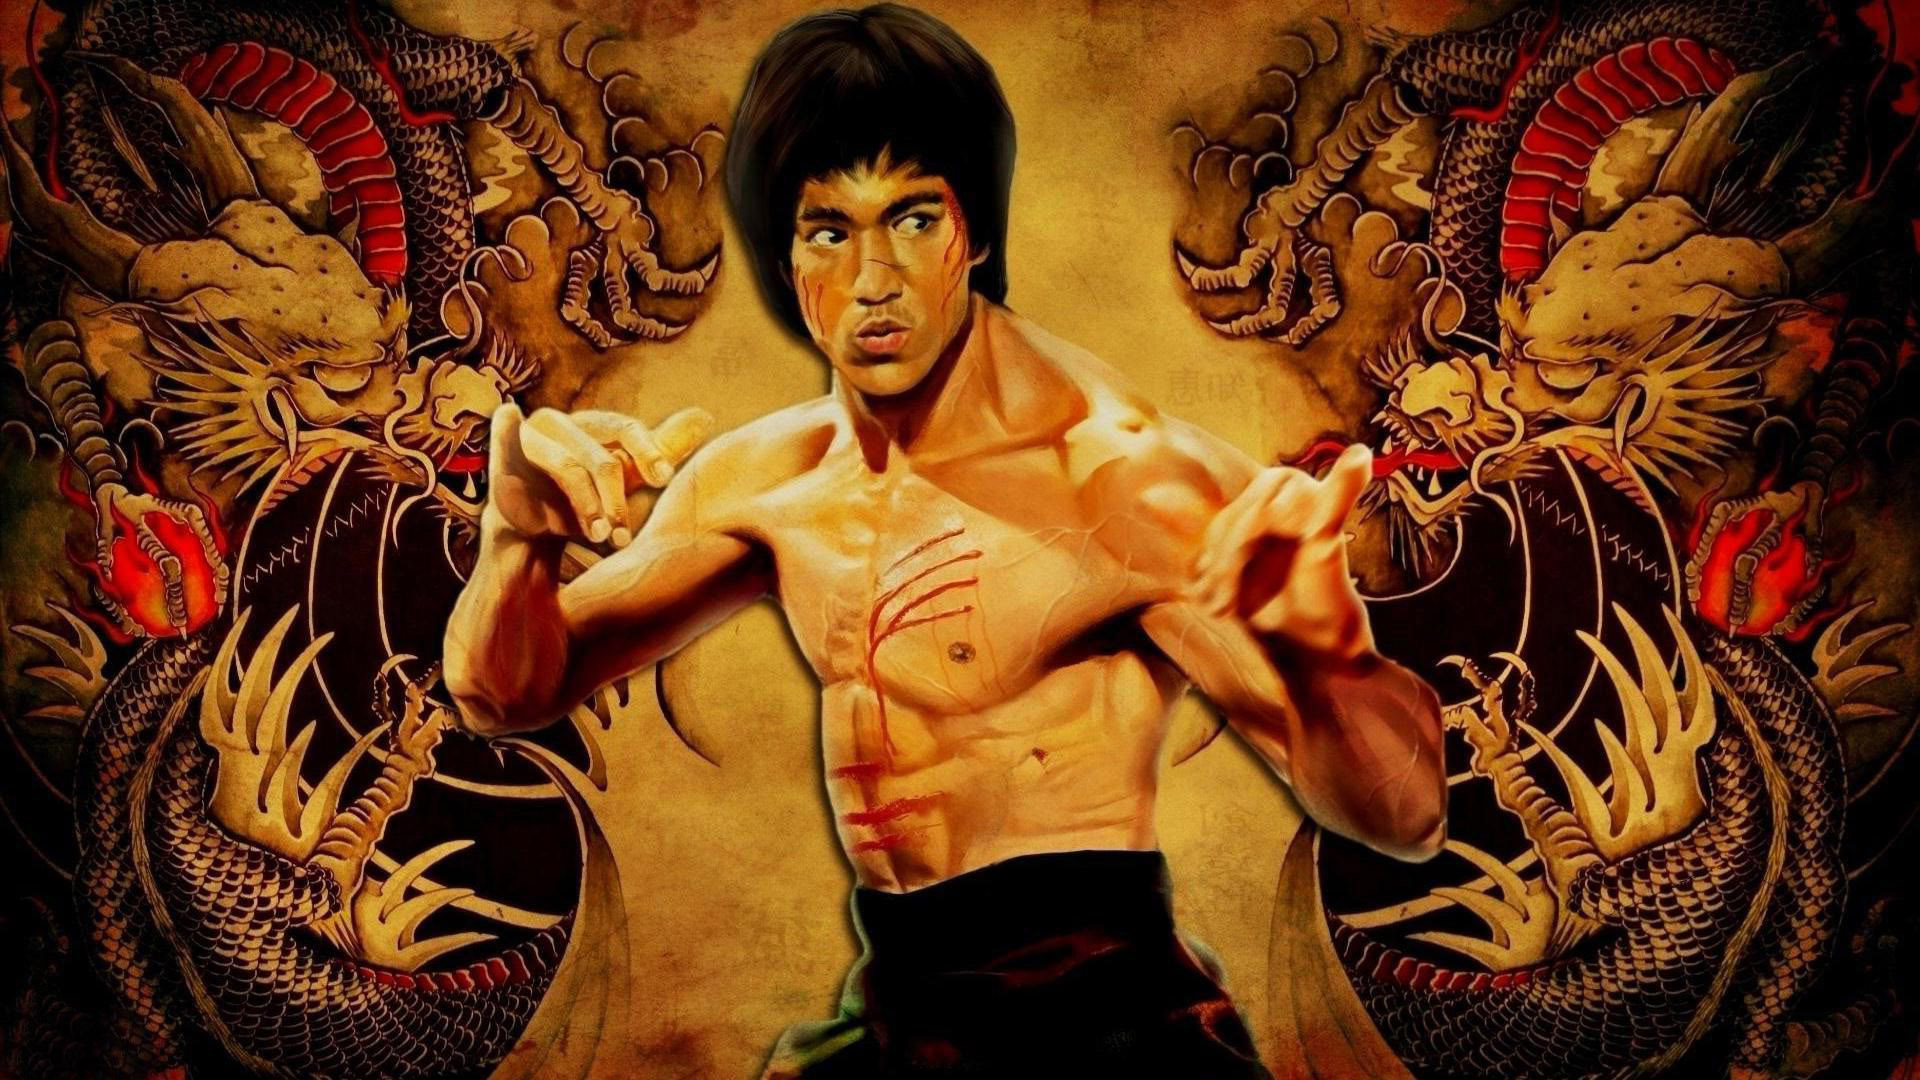 Cute Drawing Wallpaper Bruce Lee Images Free Download Pixelstalk Net